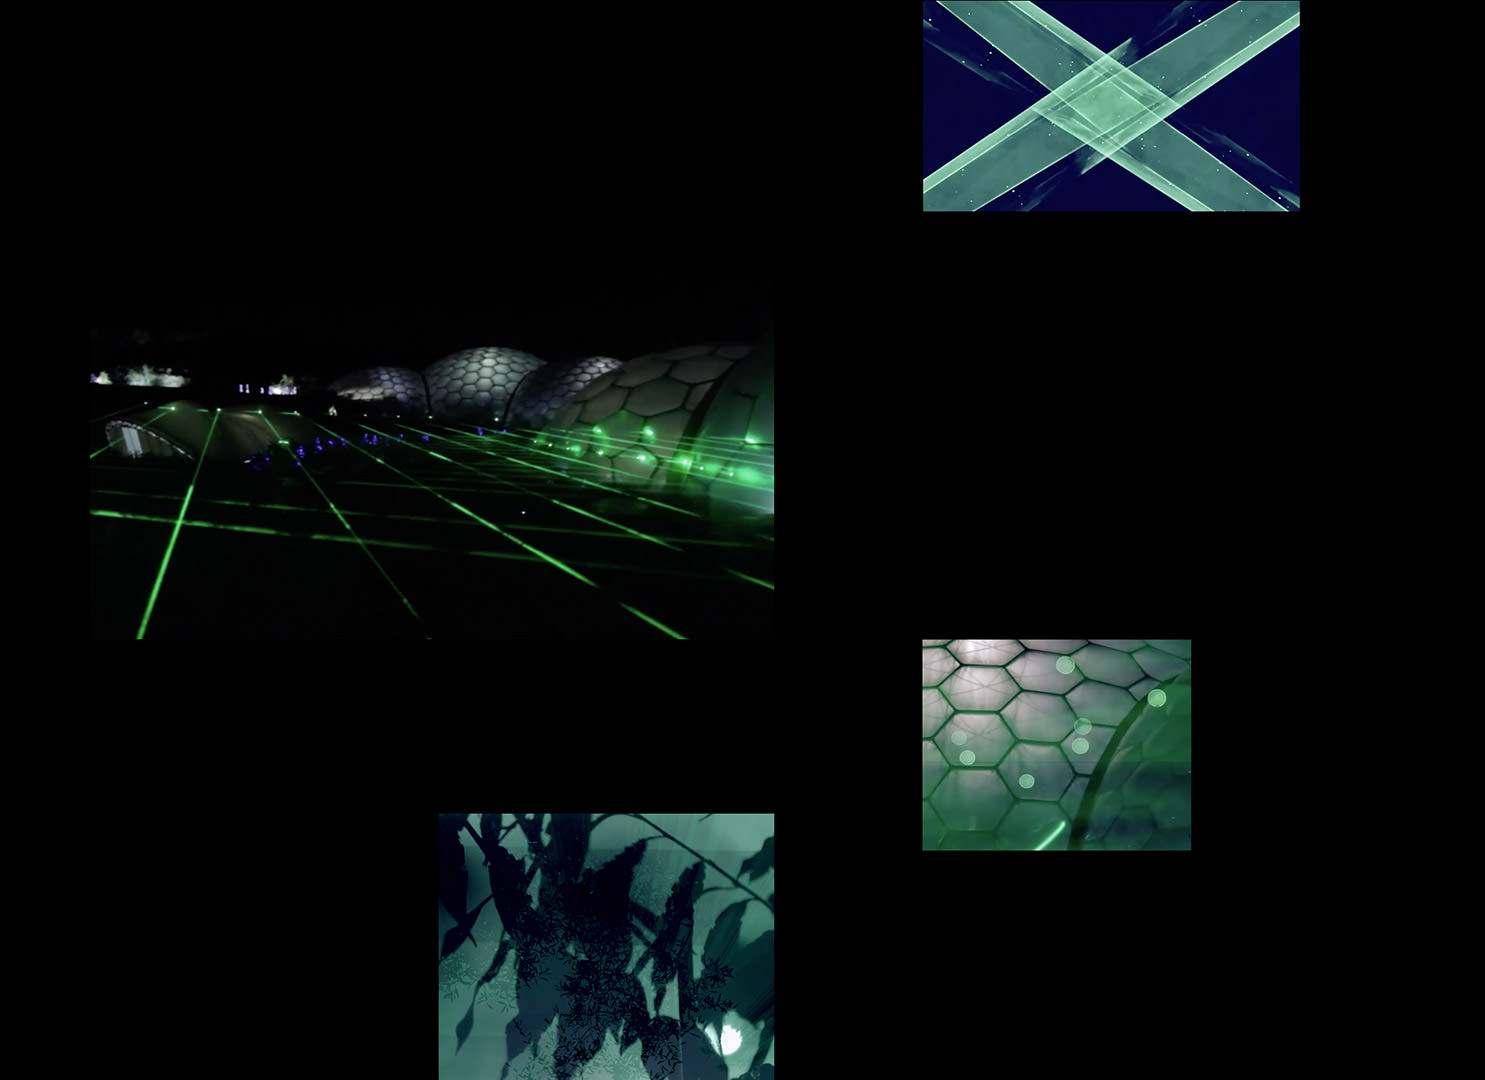 Spatial audio with lazer light and natural science 3D images at EdenLab